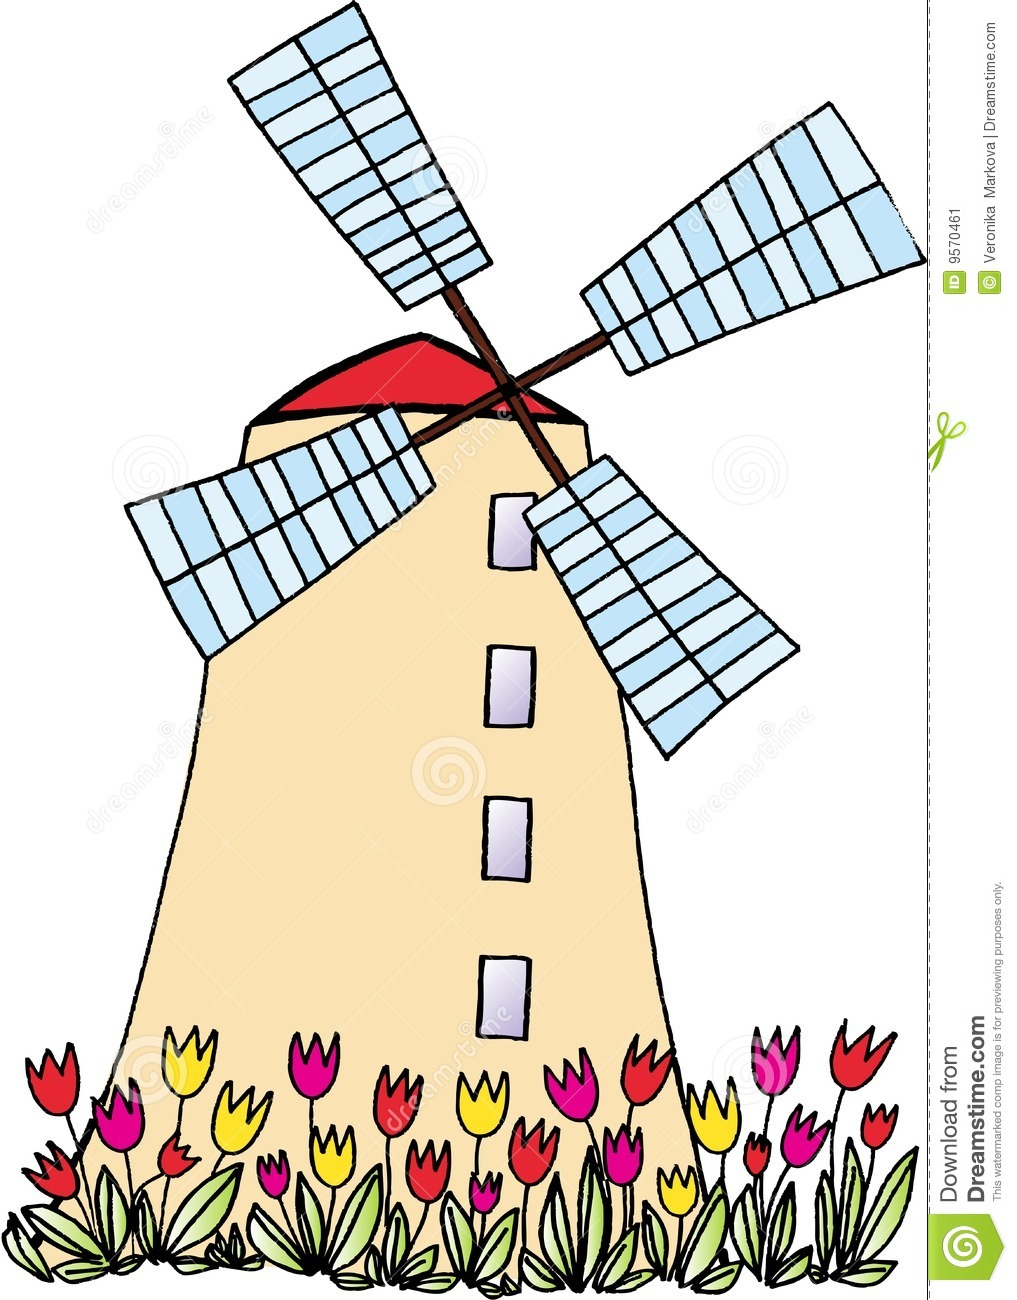 Windmill clipart #9, Download drawings